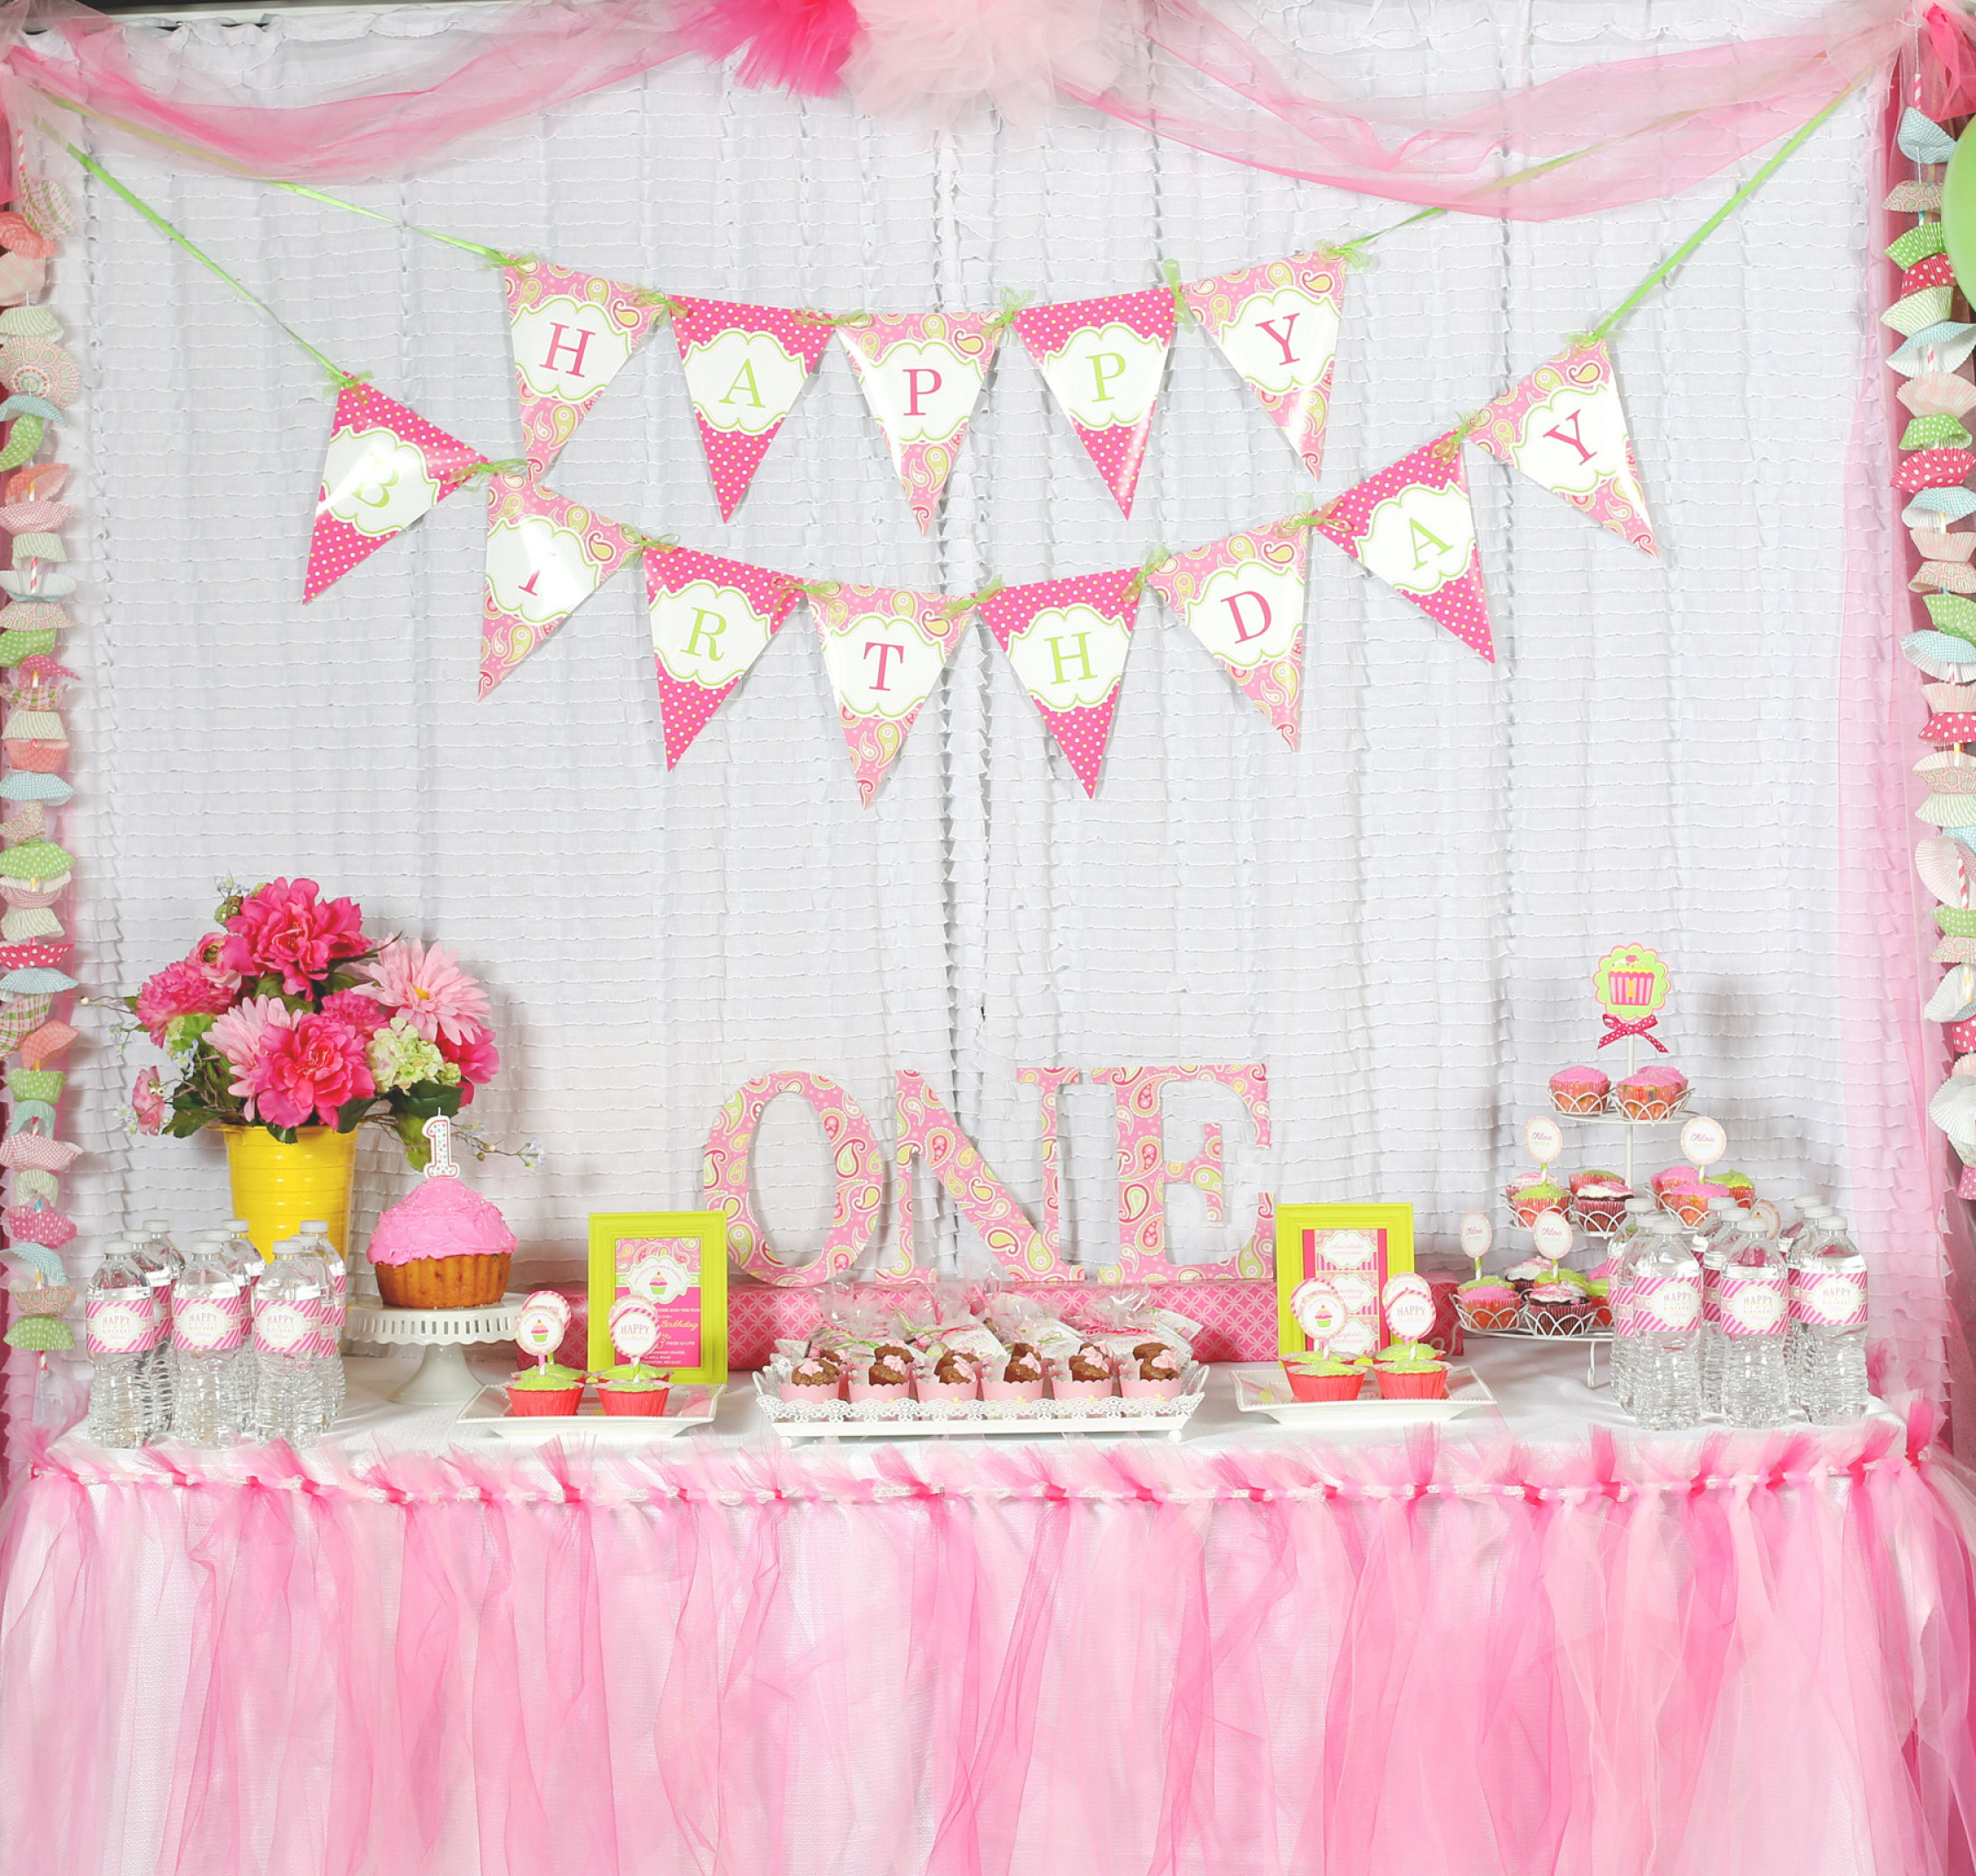 Best ideas about First Birthday Party Decorations . Save or Pin A Cupcake Themed 1st Birthday party with Paisley and Polka Now.